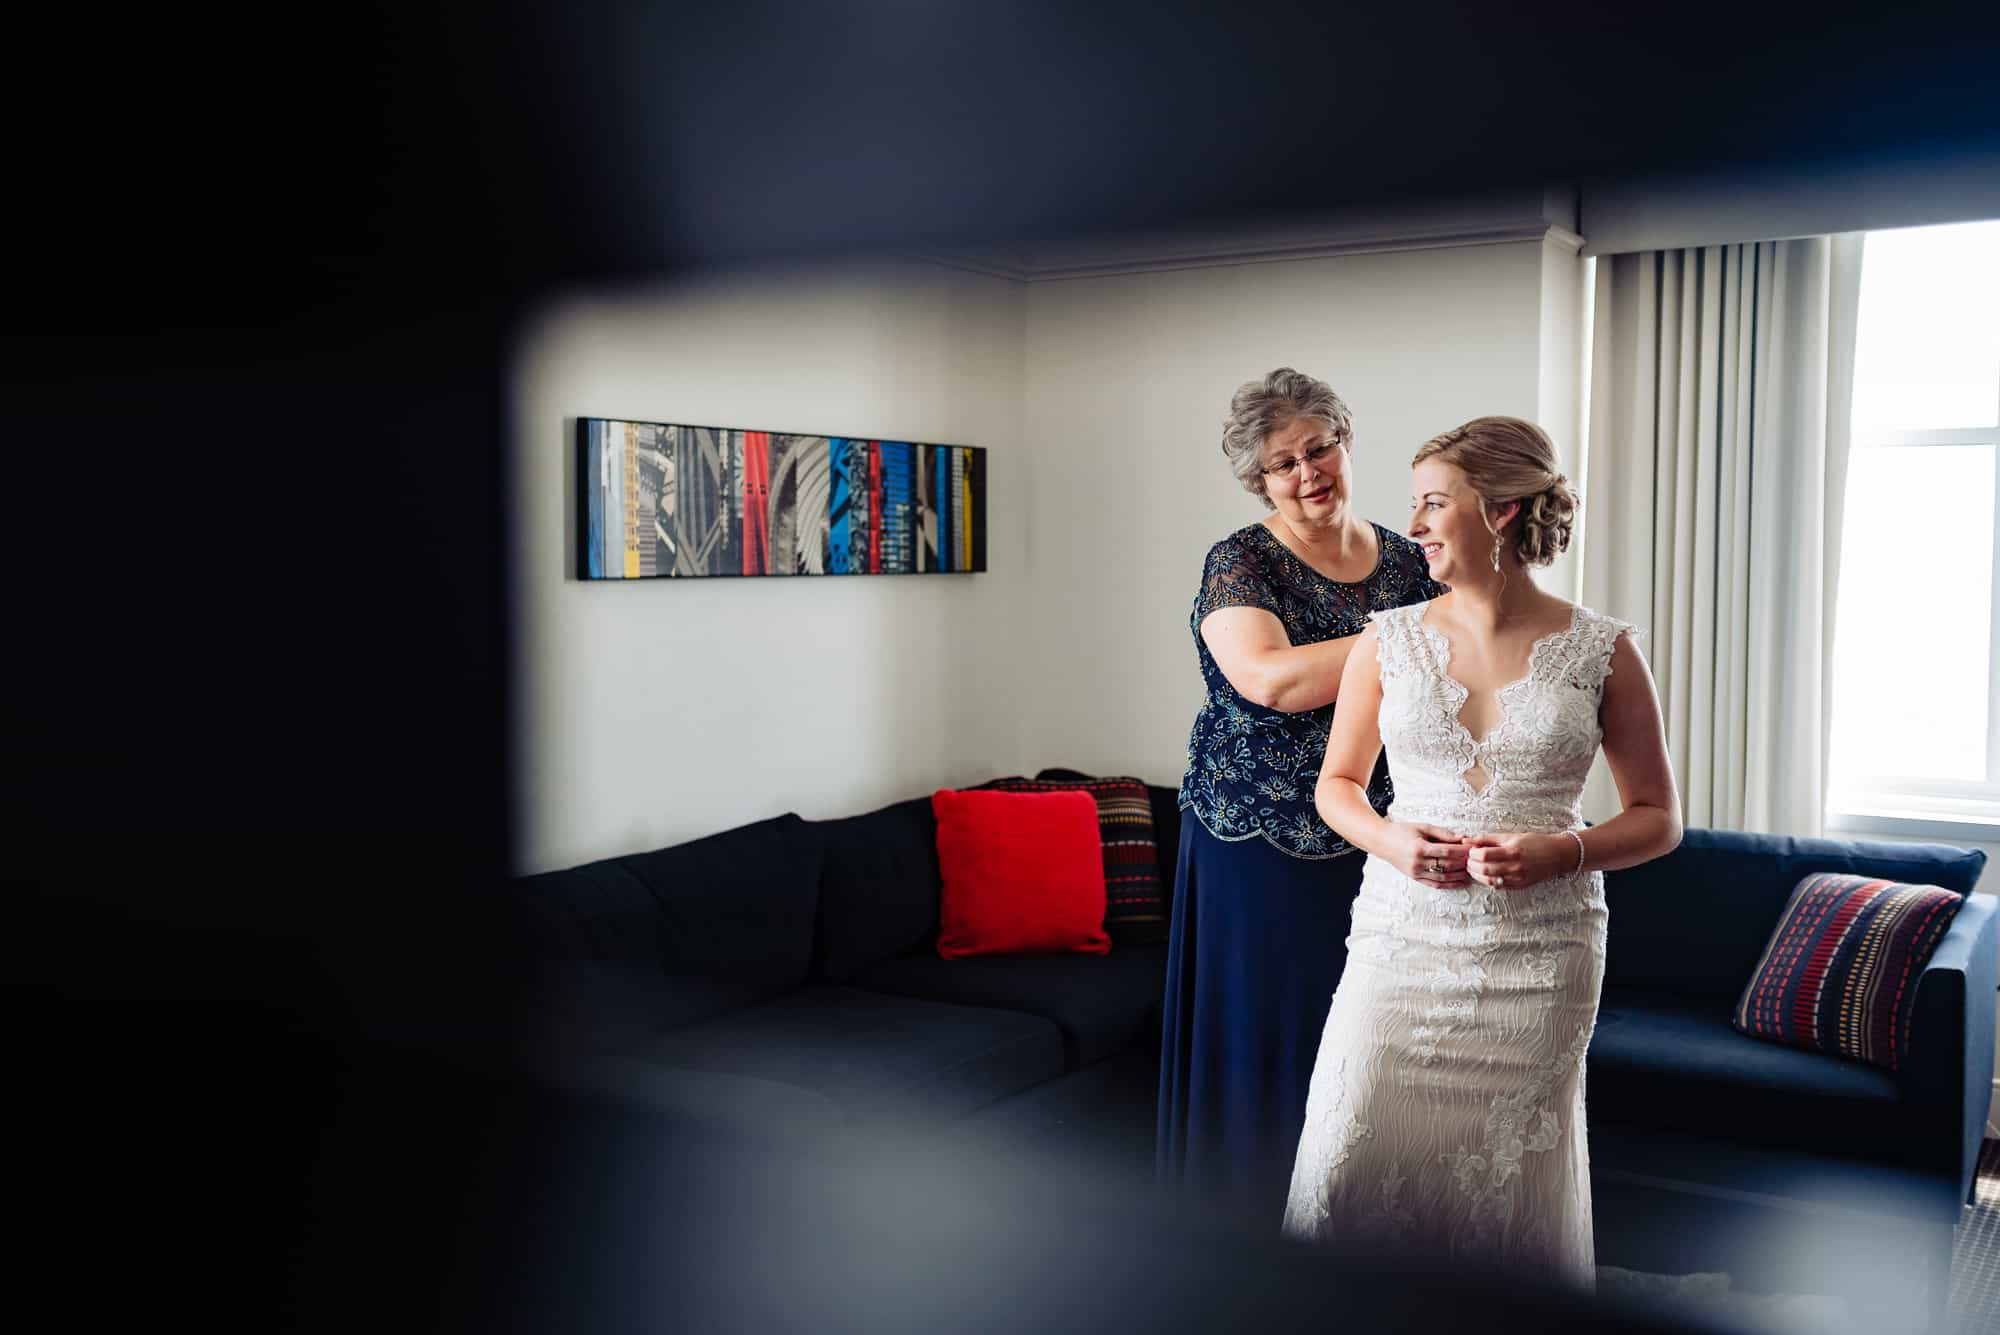 getting ready, mother of the bride helping the bride get into her Maggie Sottero lace gown